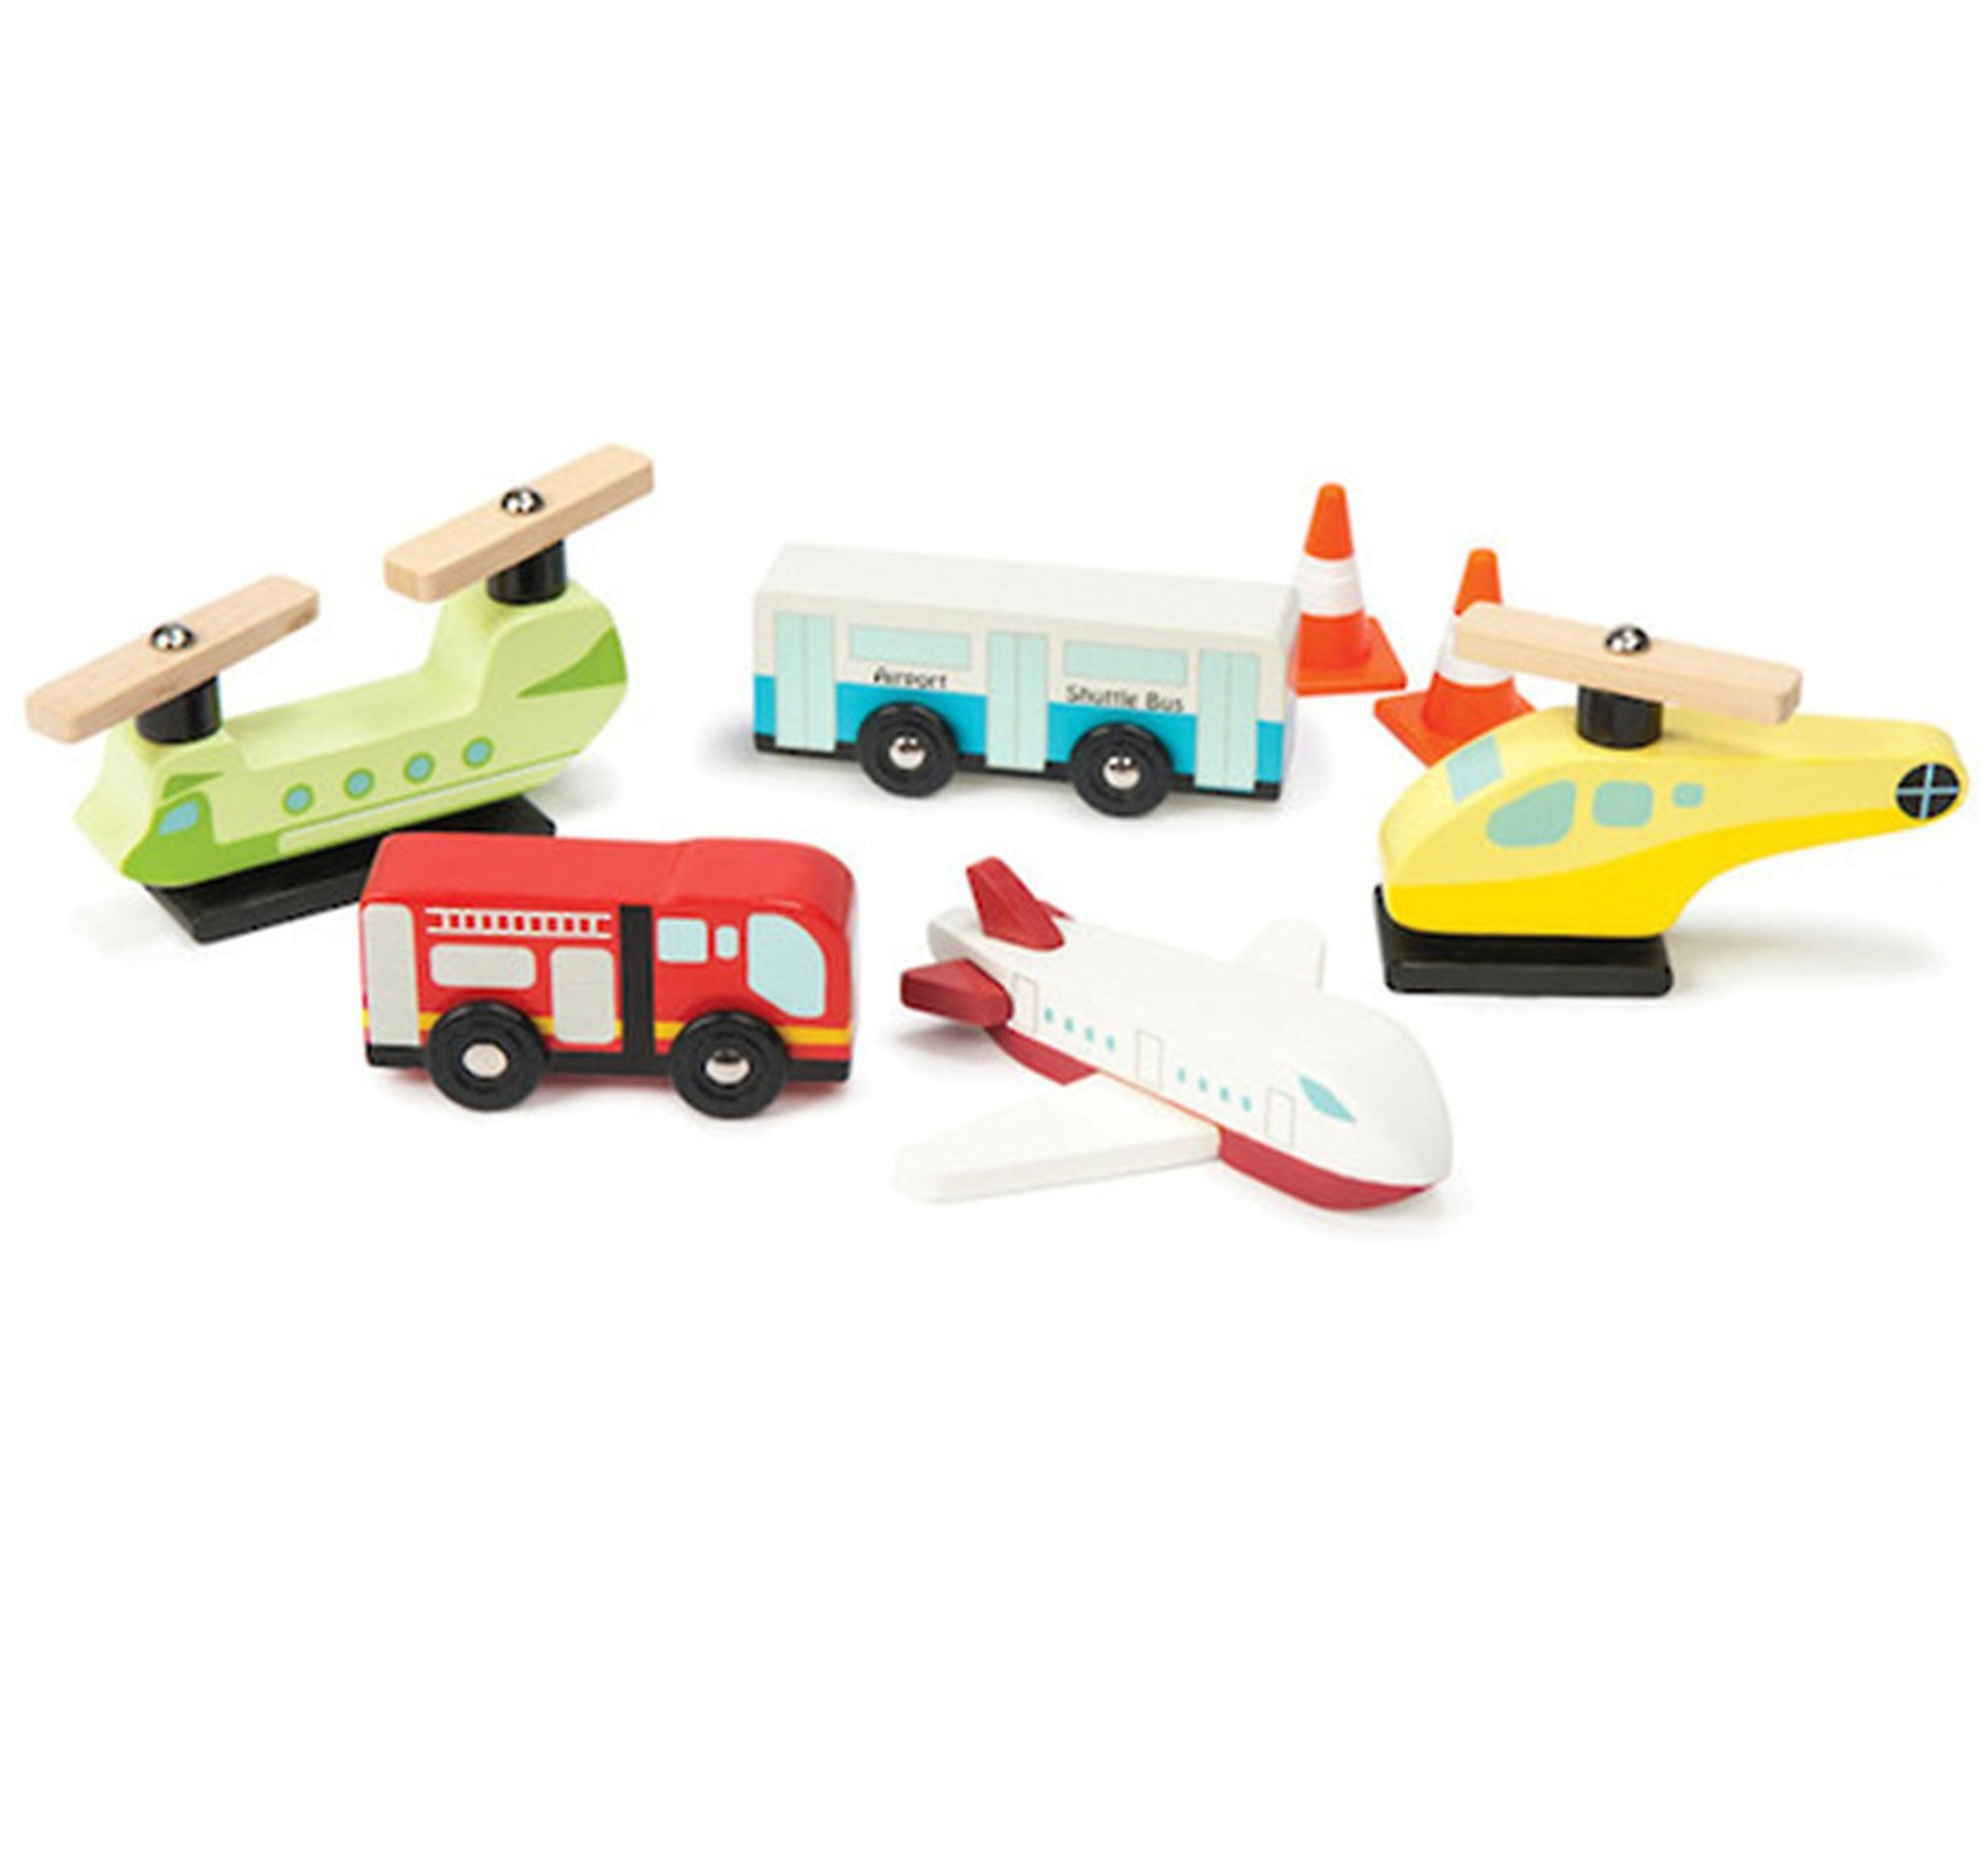 Airport Wooden Toy Set for children & kids in S A